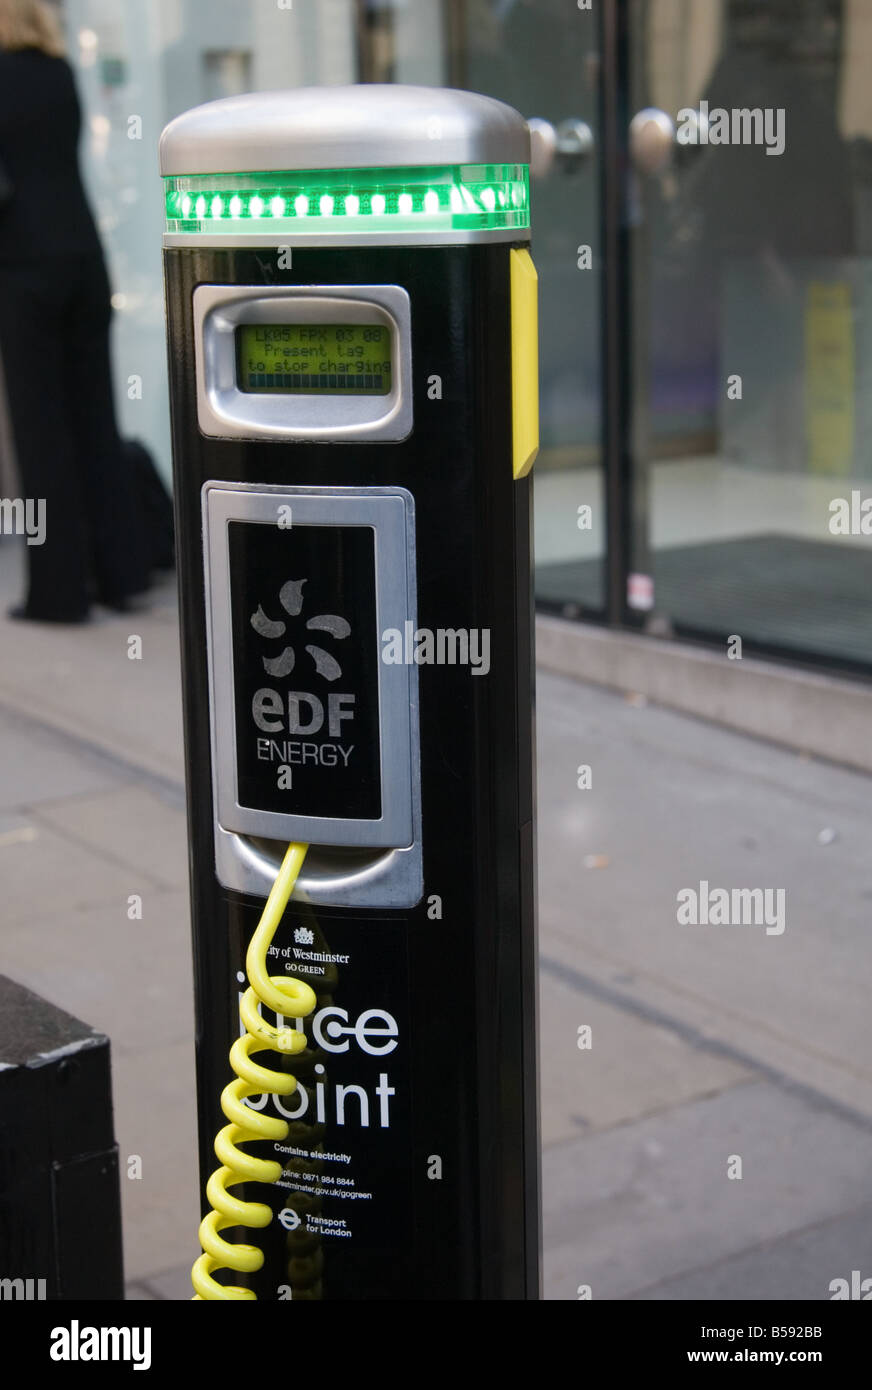 An EDF electric car battery re-charging point in use, Covent Garden, London, UK - Stock Image